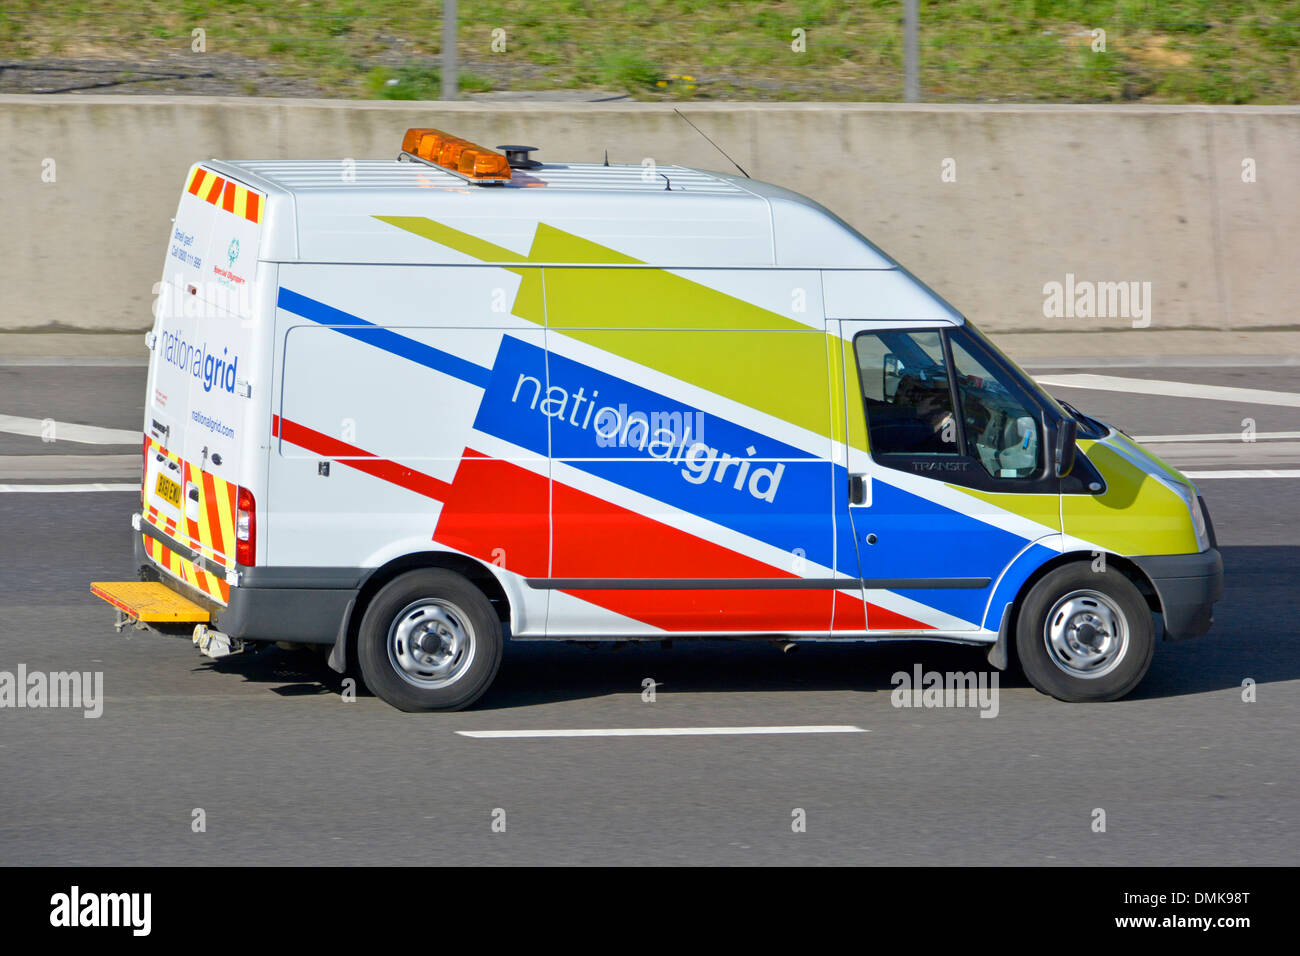 National grid uk stock photos national grid uk stock images alamy ford transit van operated by the national grid driving along motorway stock image biocorpaavc Image collections